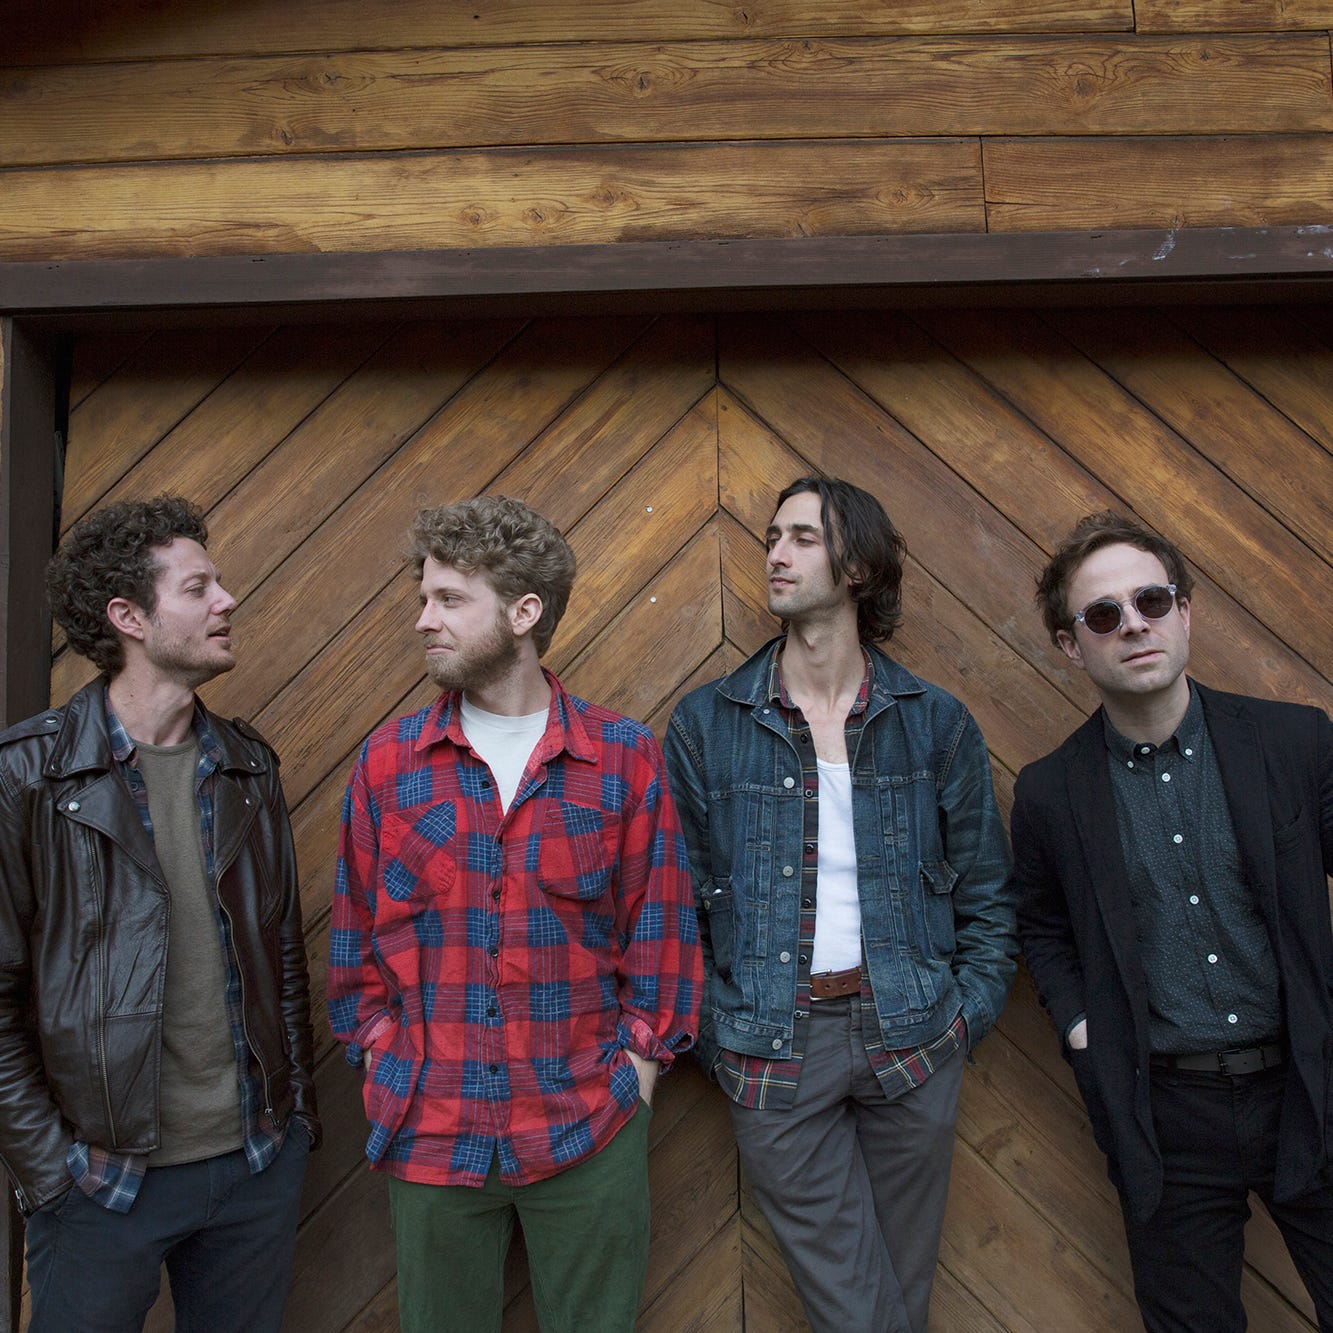 Roots/folk rock foursome Dawes to play The Howard in Oshkosh